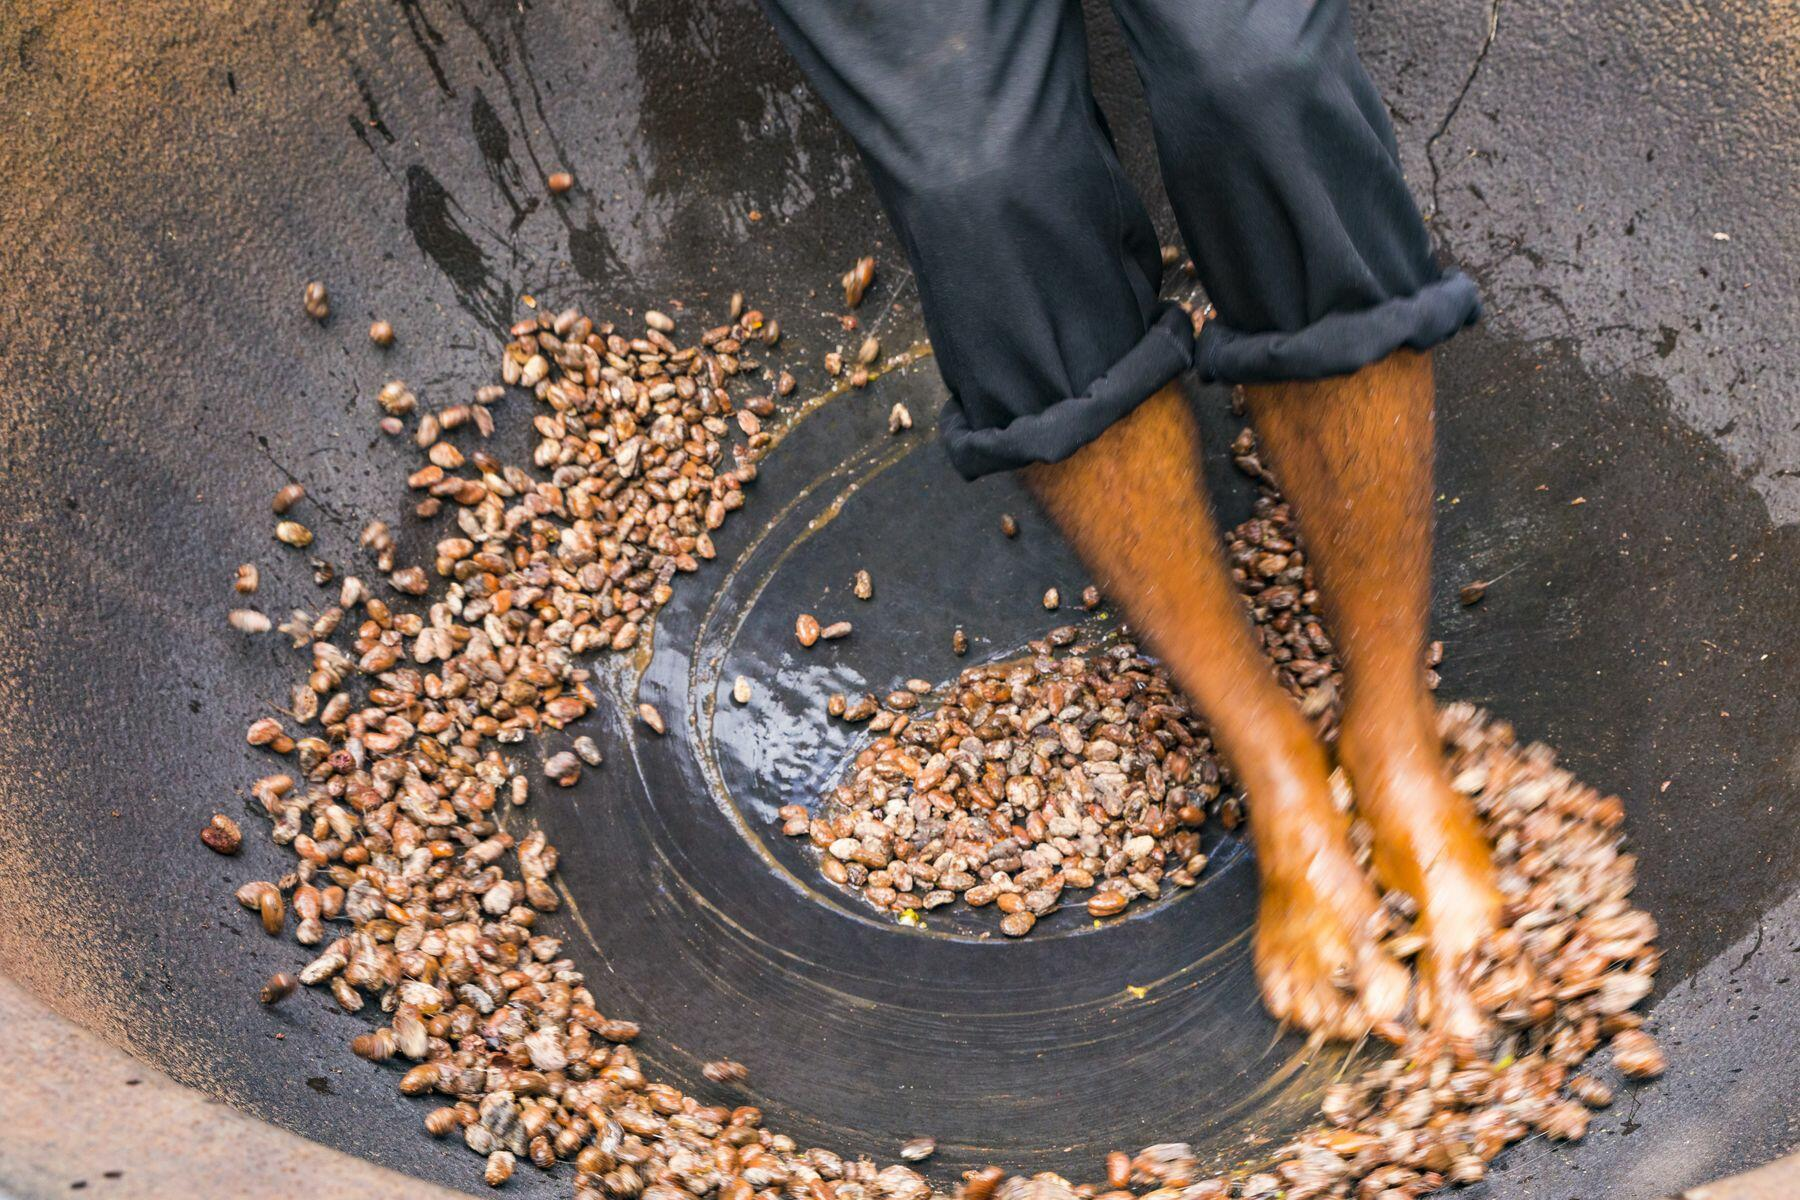 feet stepping on cocoa beans